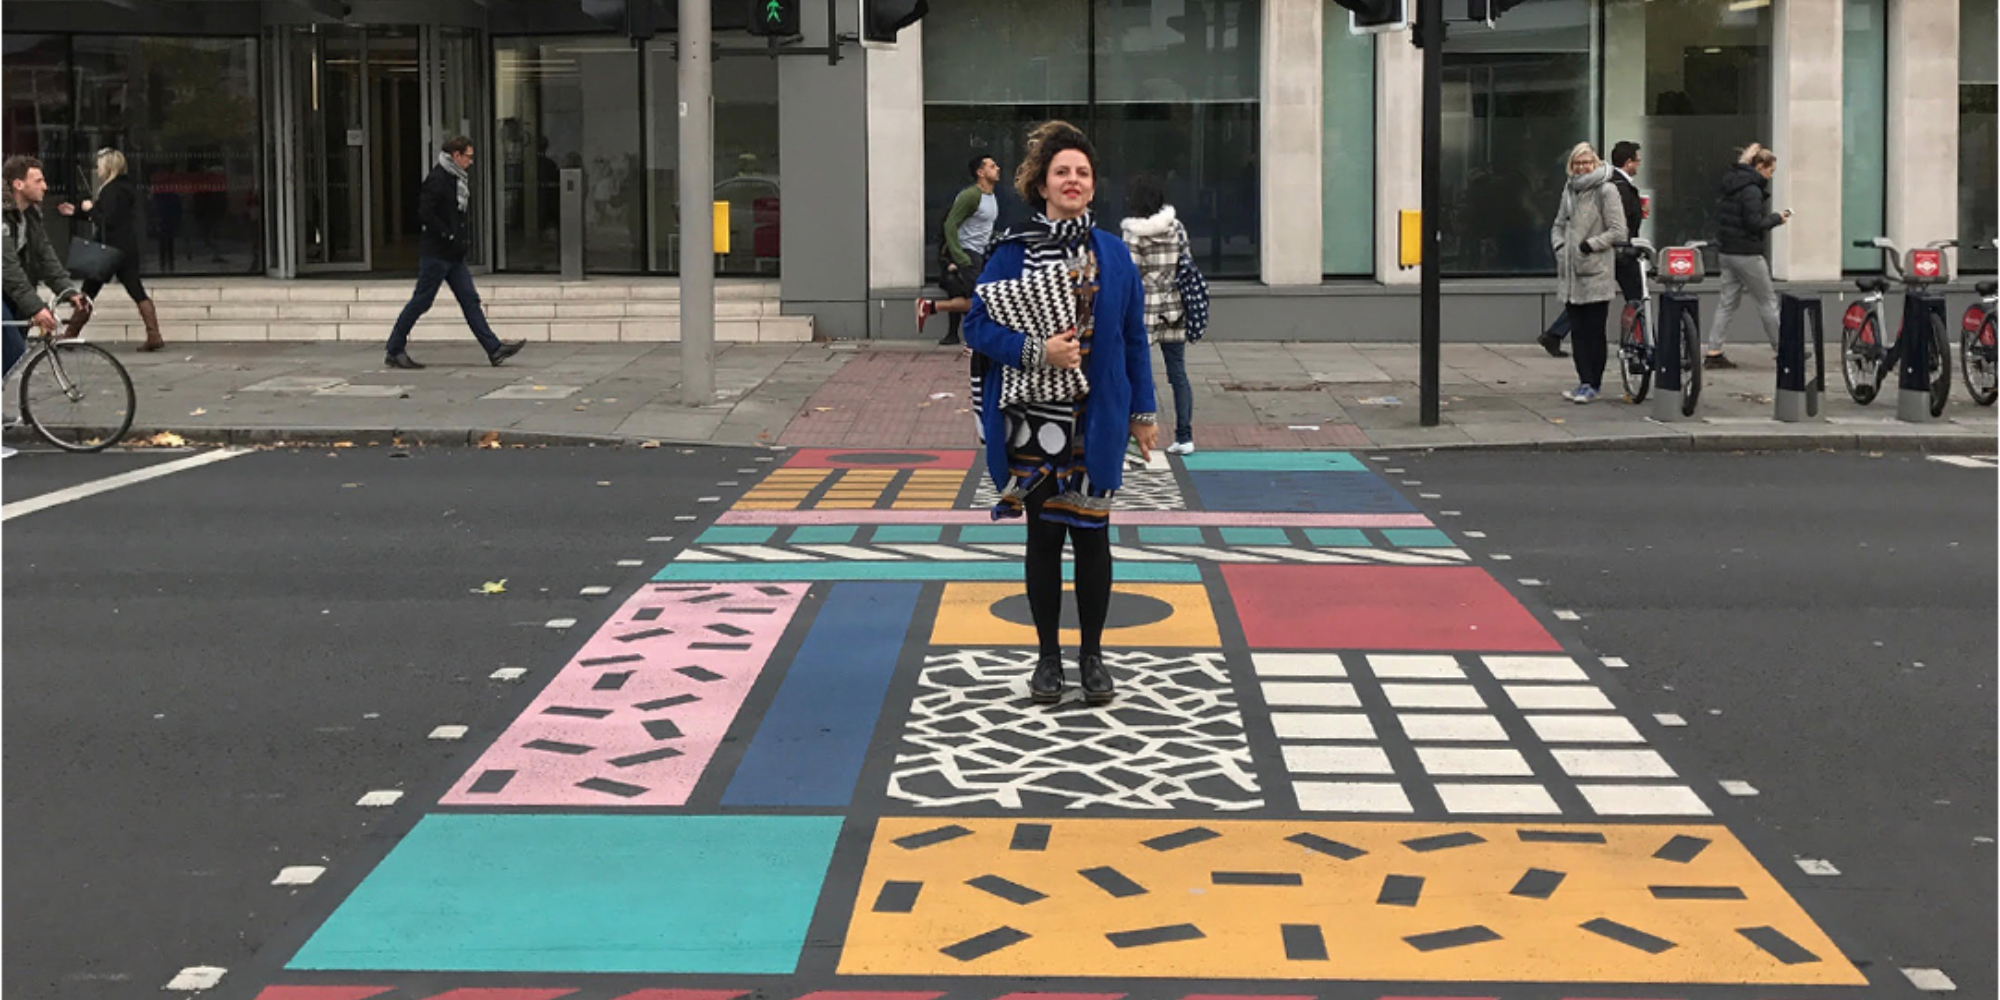 Camille Walala tells of her life in London